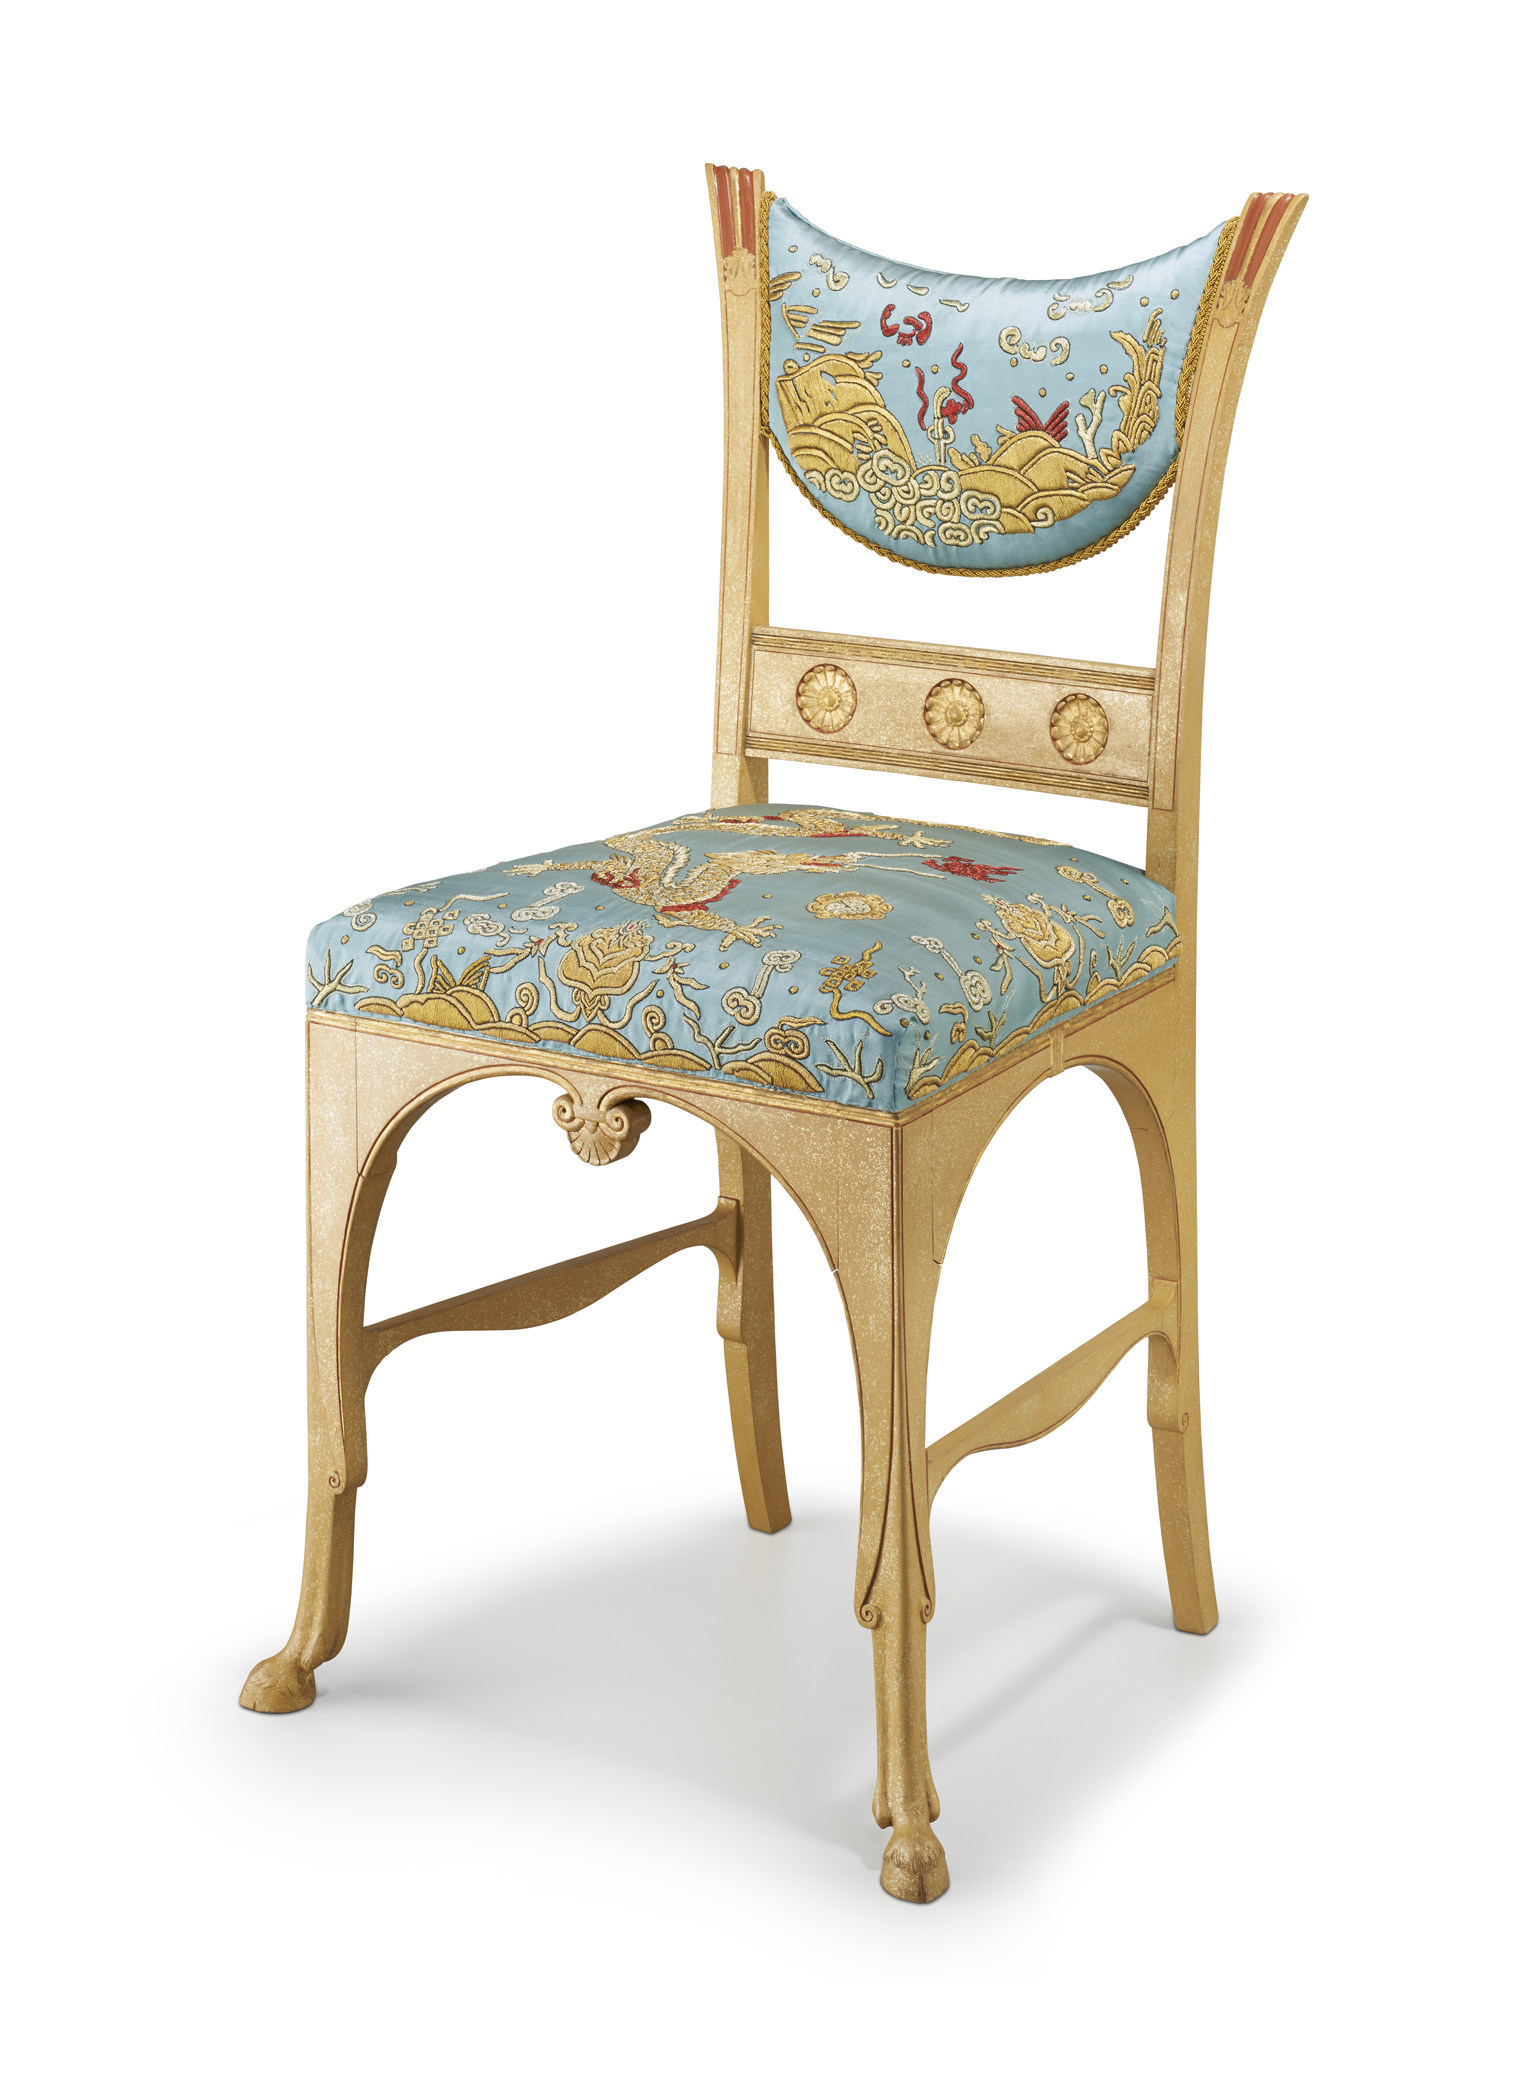 Authentic egyptian furniture - Winter Antiques Show Side Chair